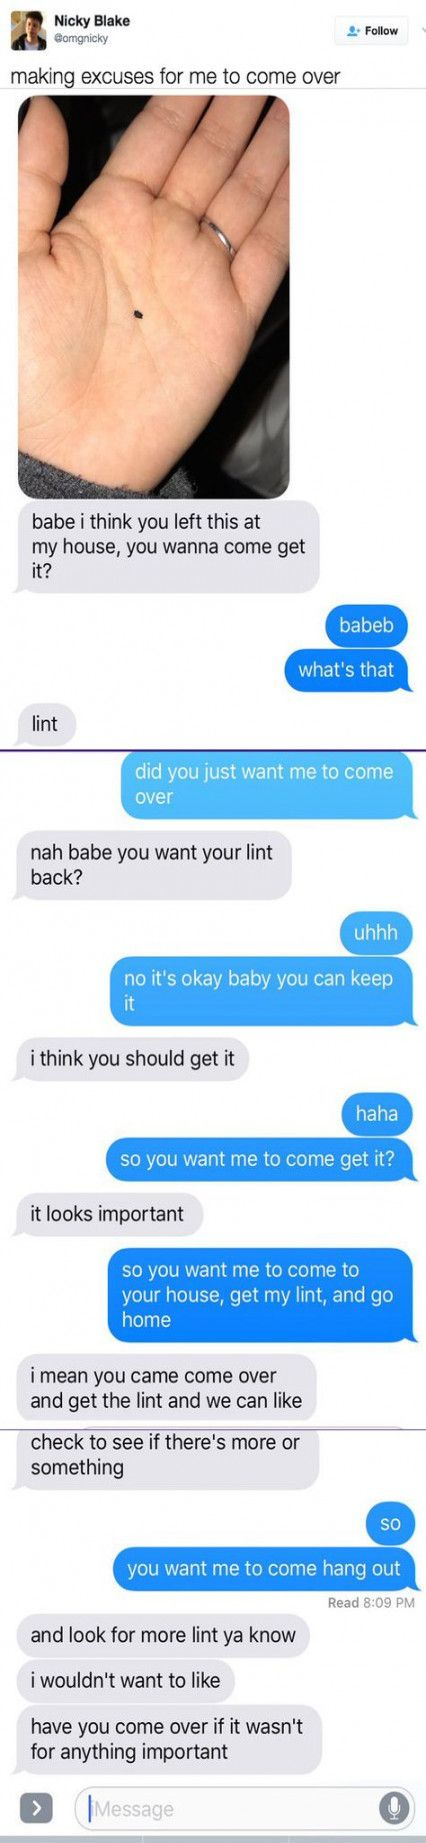 Trendy Funny Couple Goals Text Messages Ideas